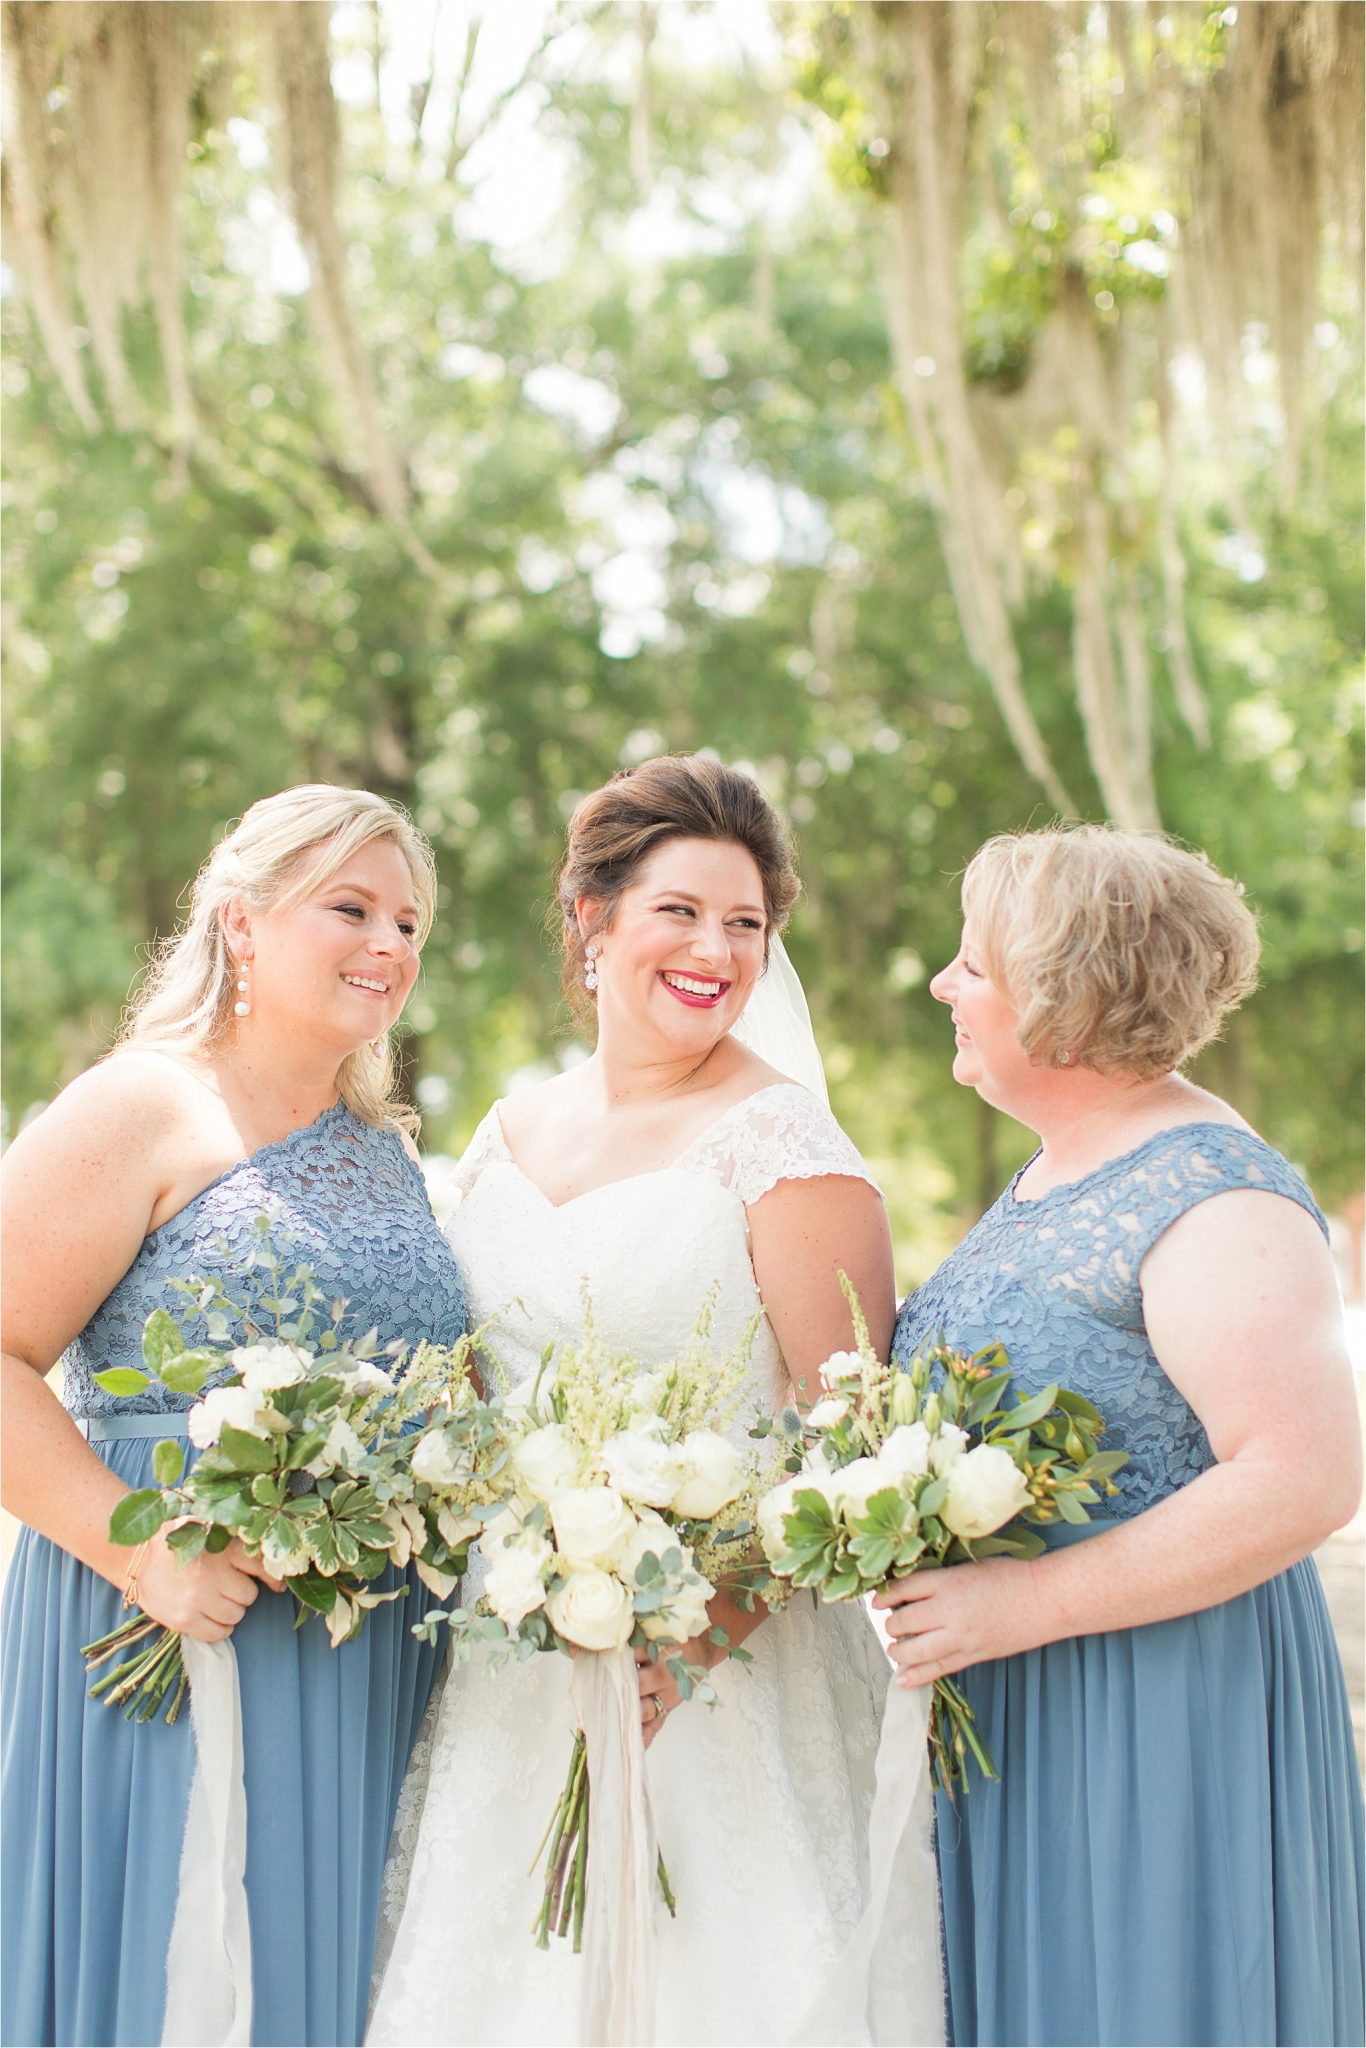 Pastel Themed Wedding-The Chapel at the Waters-Montgomery Alabama Photographer-Miles & Meredyth-Blue Themed Wedding-Alabama Wedding Venue-Wedding Details-Blue Bridesmaids Dresses-Wedding Day Makeup